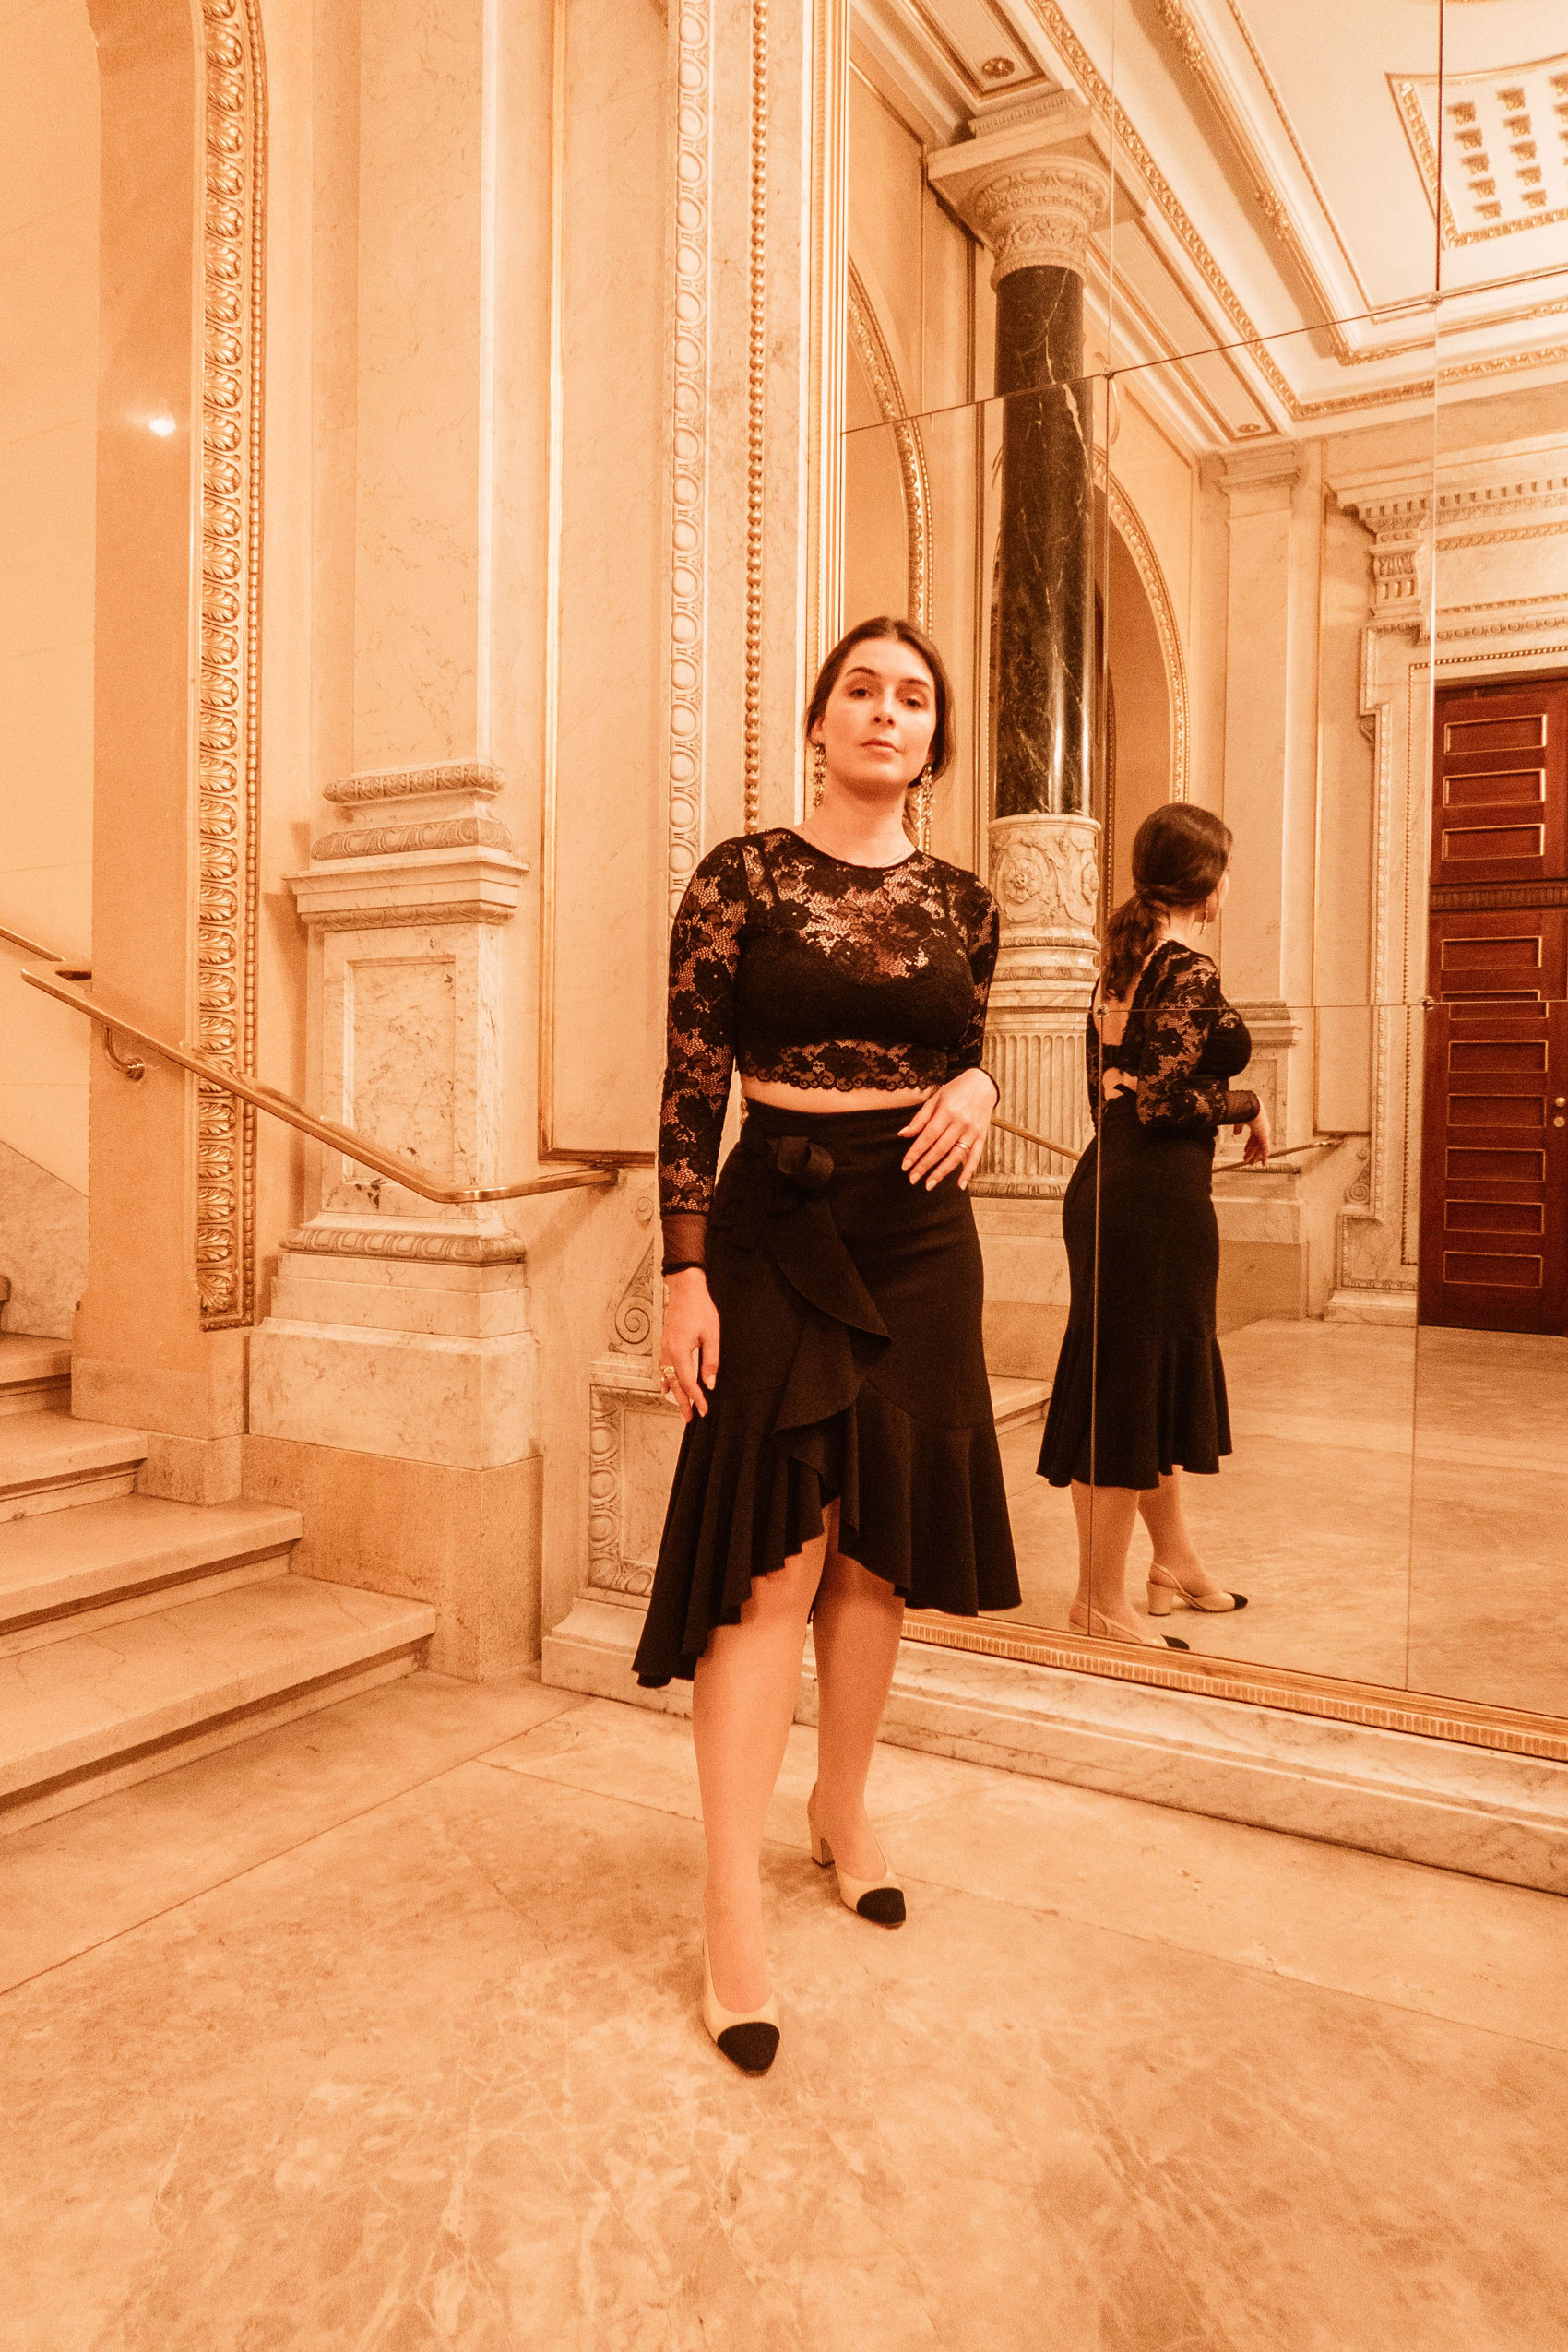 Arara Pintada wears long earrings and lace top with ruffled skirt and Chanel slingback for a night at the Vienna Opera